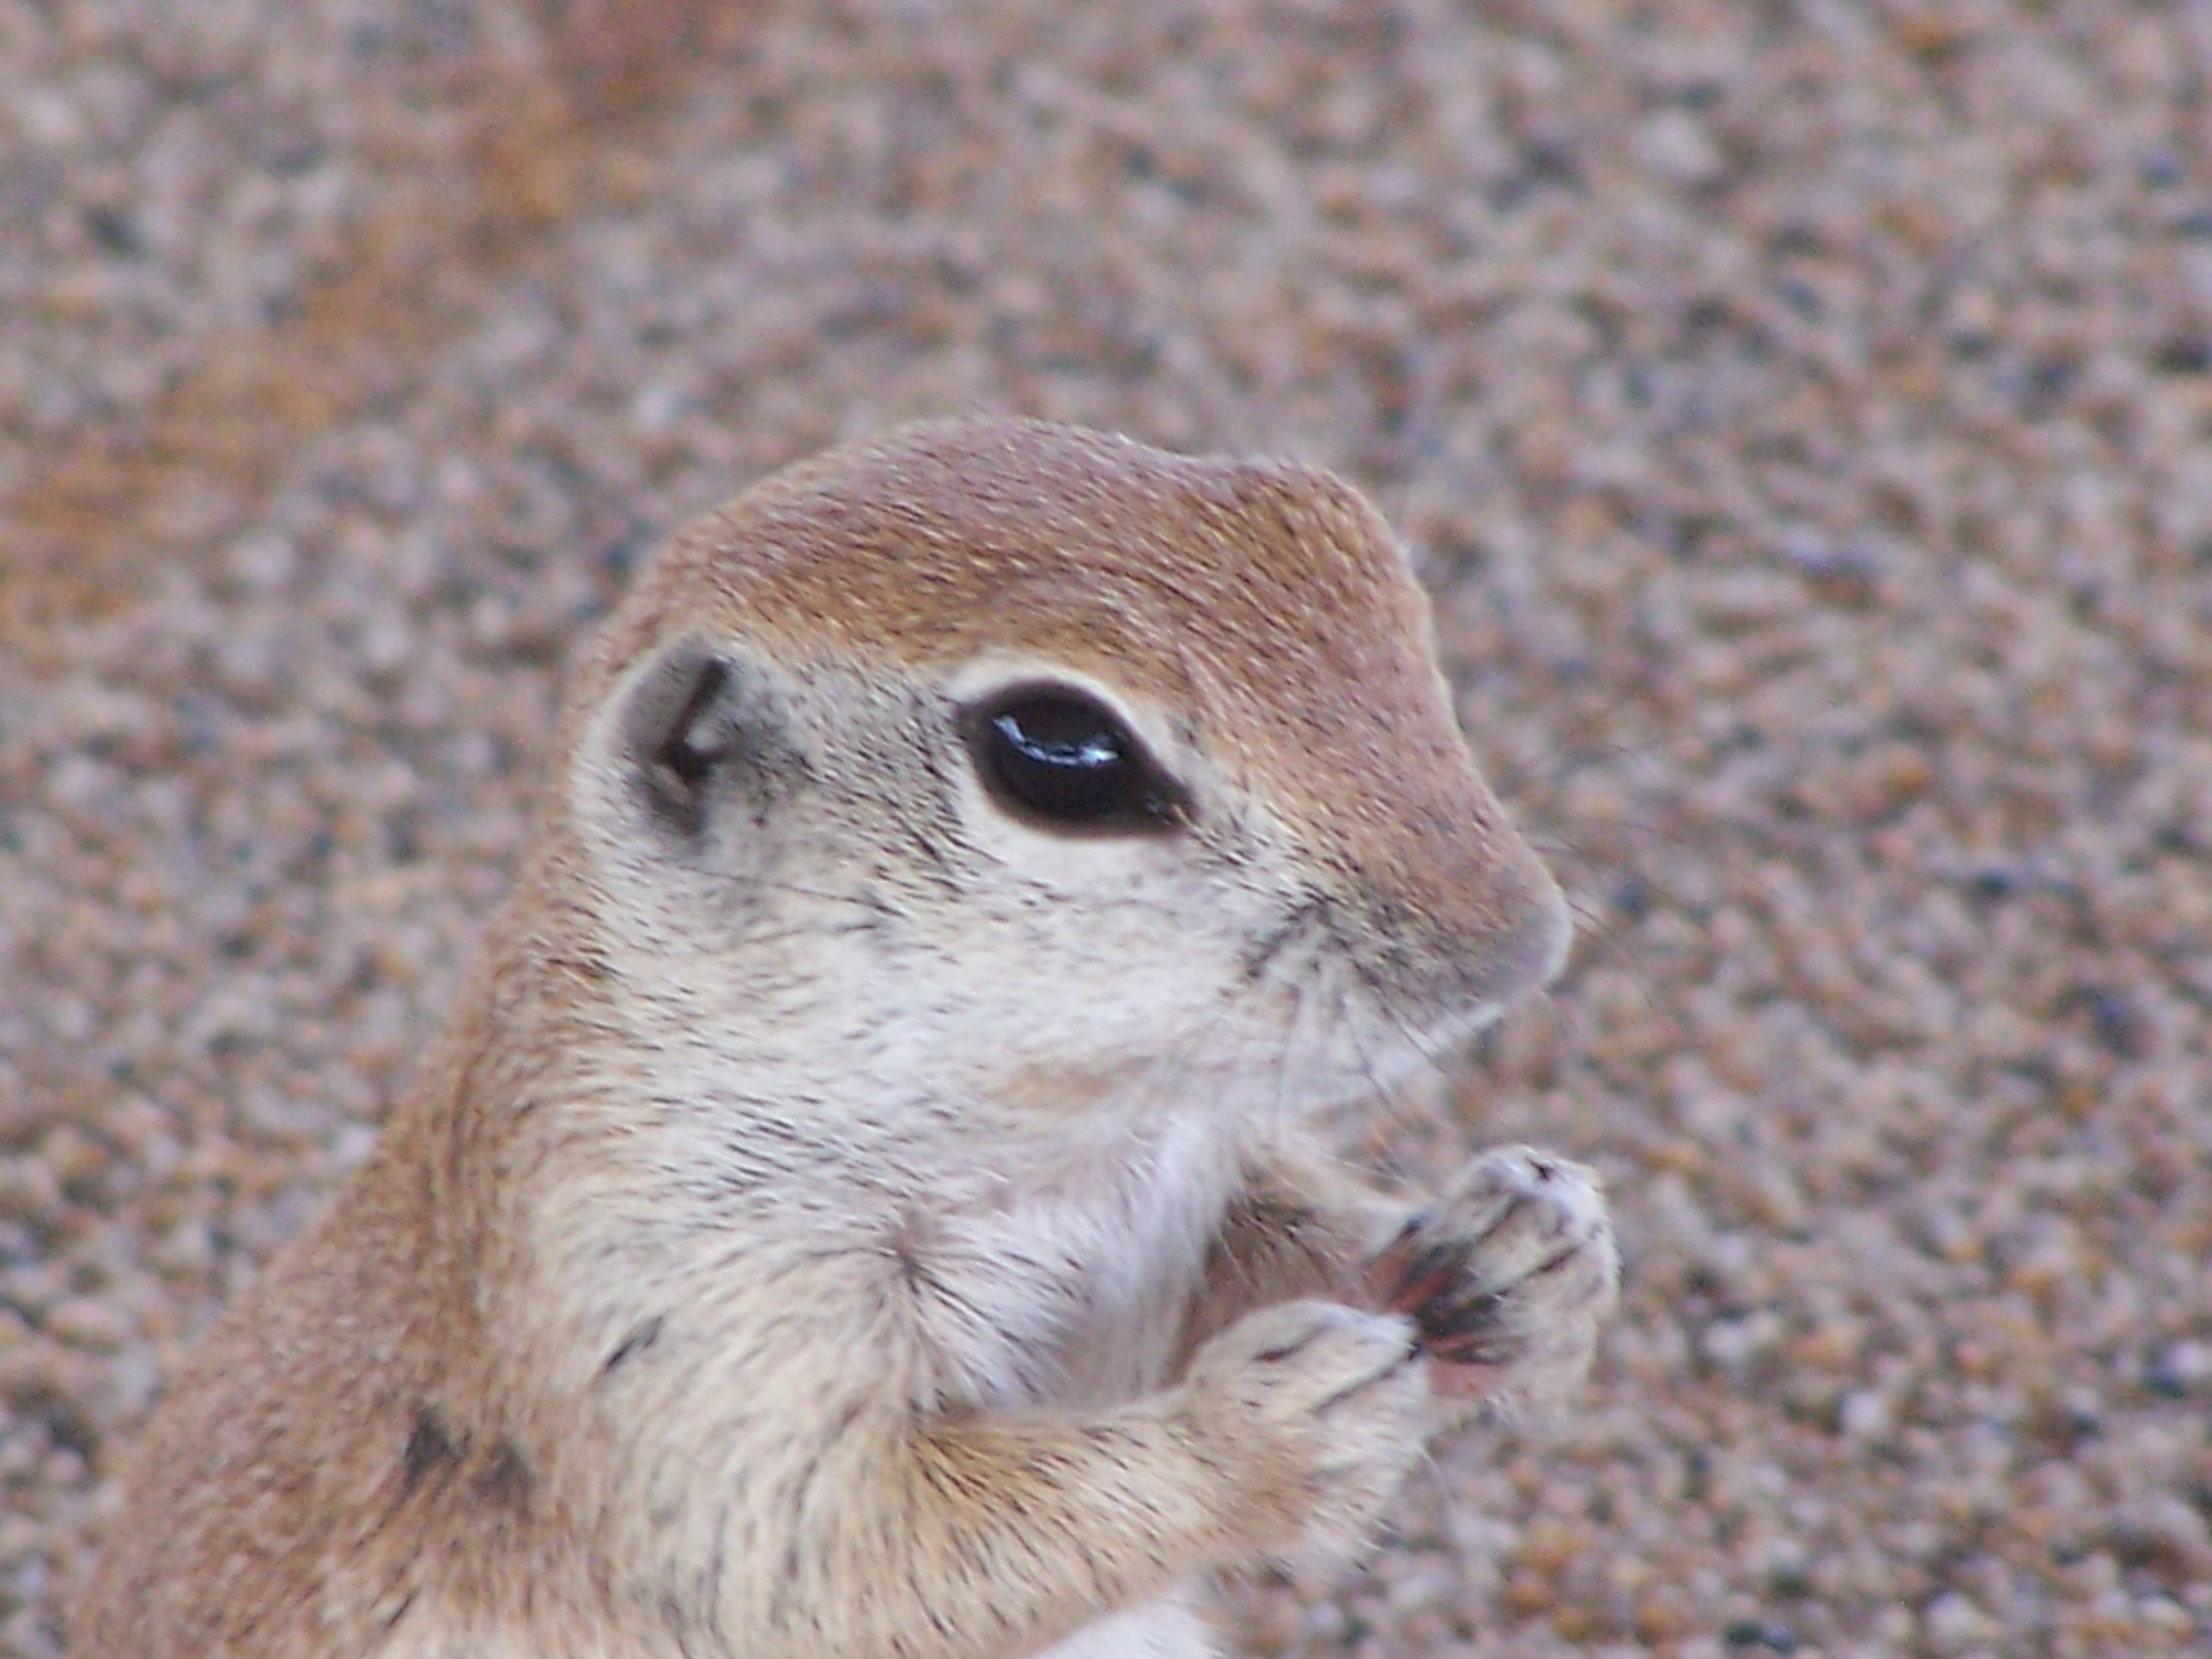 Close up of a round tail ground squirrel showing tiny ears, big eyes, and clawed hands